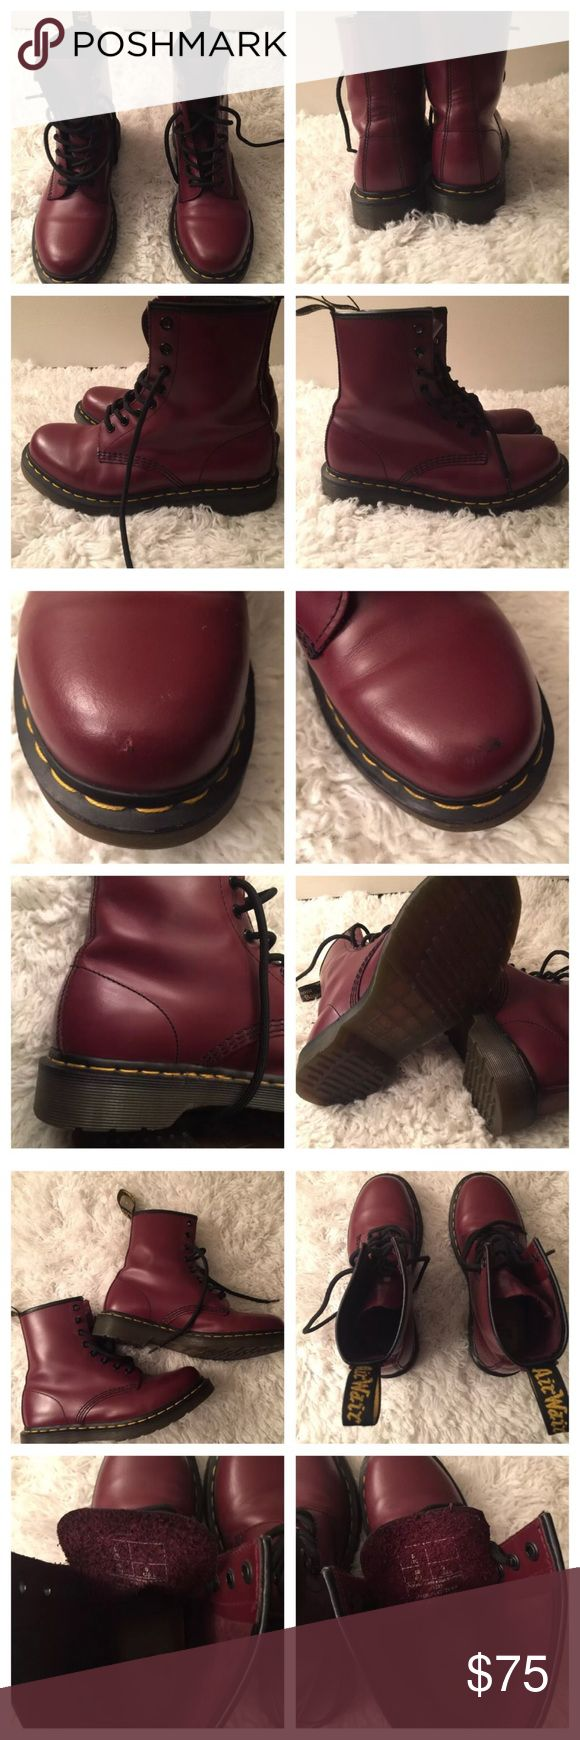 """Dr Martens lace up boot burgundy size 8 Used as a display shoe for Nordstrom department store so there was light sampling. They are in good condition. Pictures show scuff on left shoe and minimal scuffing on inner sides of shoe also show a small nic of the leather at the toe of the right shoe. These are a size 8 and true to size. Sizing: True to size.  - Round toe - Leather construction - Lace-up vamp - Back pull tab - Stitched welt - Approx. 6"""" shaft height - Approx. 1.25"""" heel, 0.5""""…"""